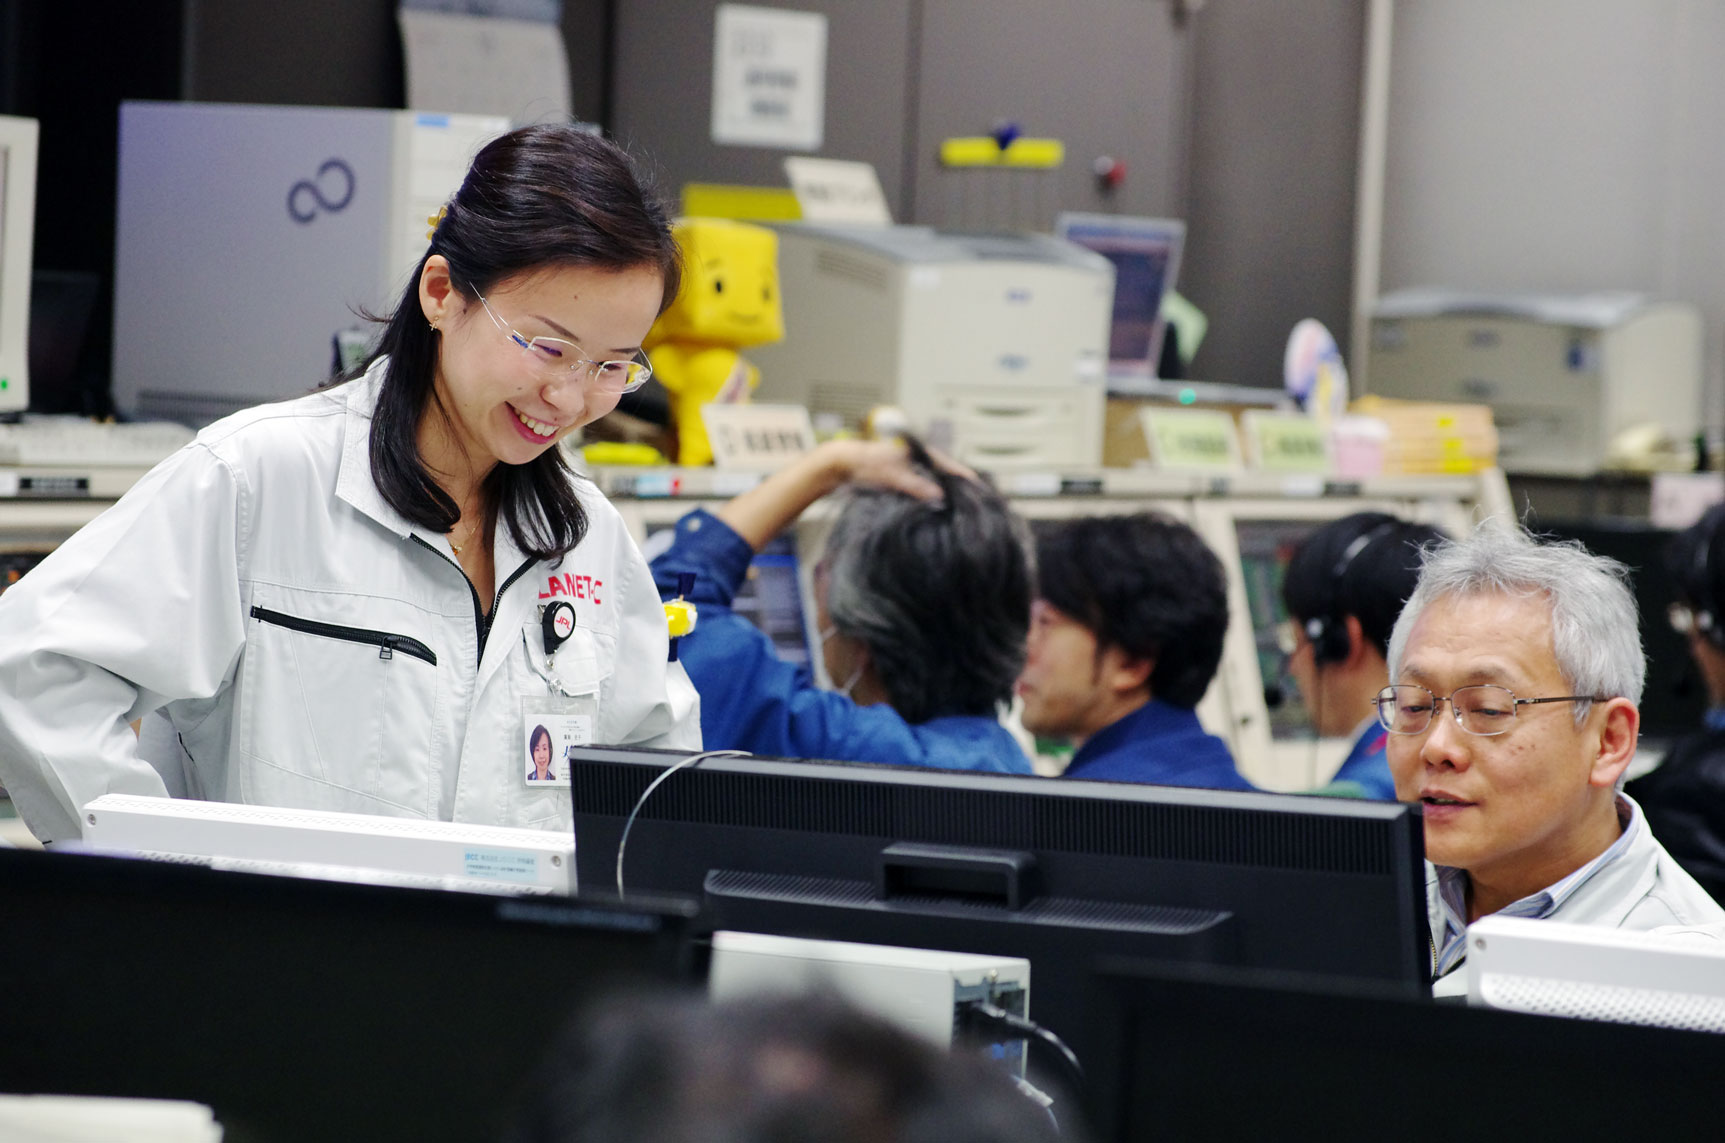 Akatsuki's ground team monitors the spacecraft's arrival at Venus from a control center in Sagamihara, Japan. Credit: JAXA